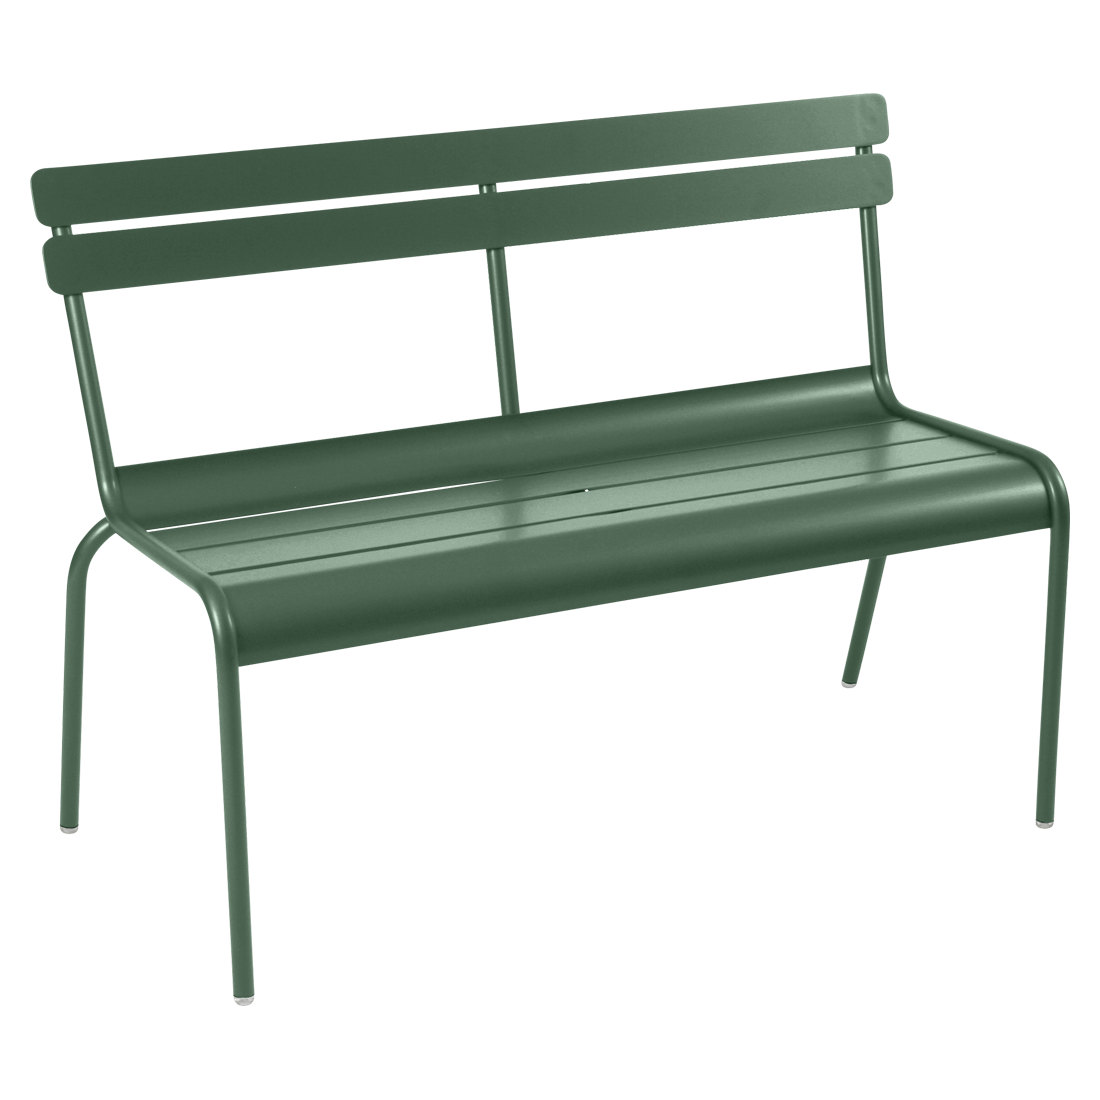 FERMOB Luxembourg 2-3 Seater Garden Bench